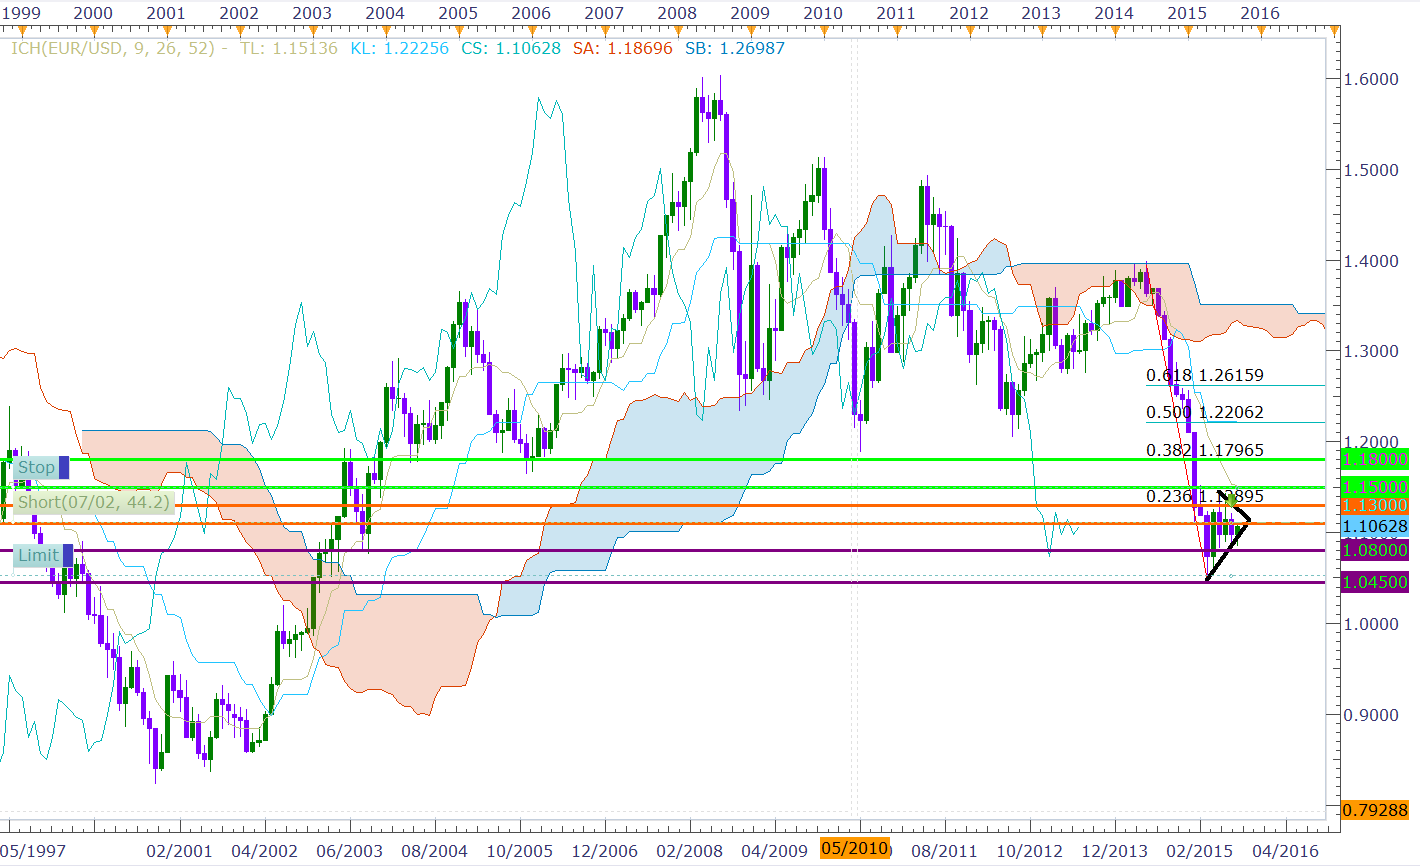 eurusd-monthly-chart.png